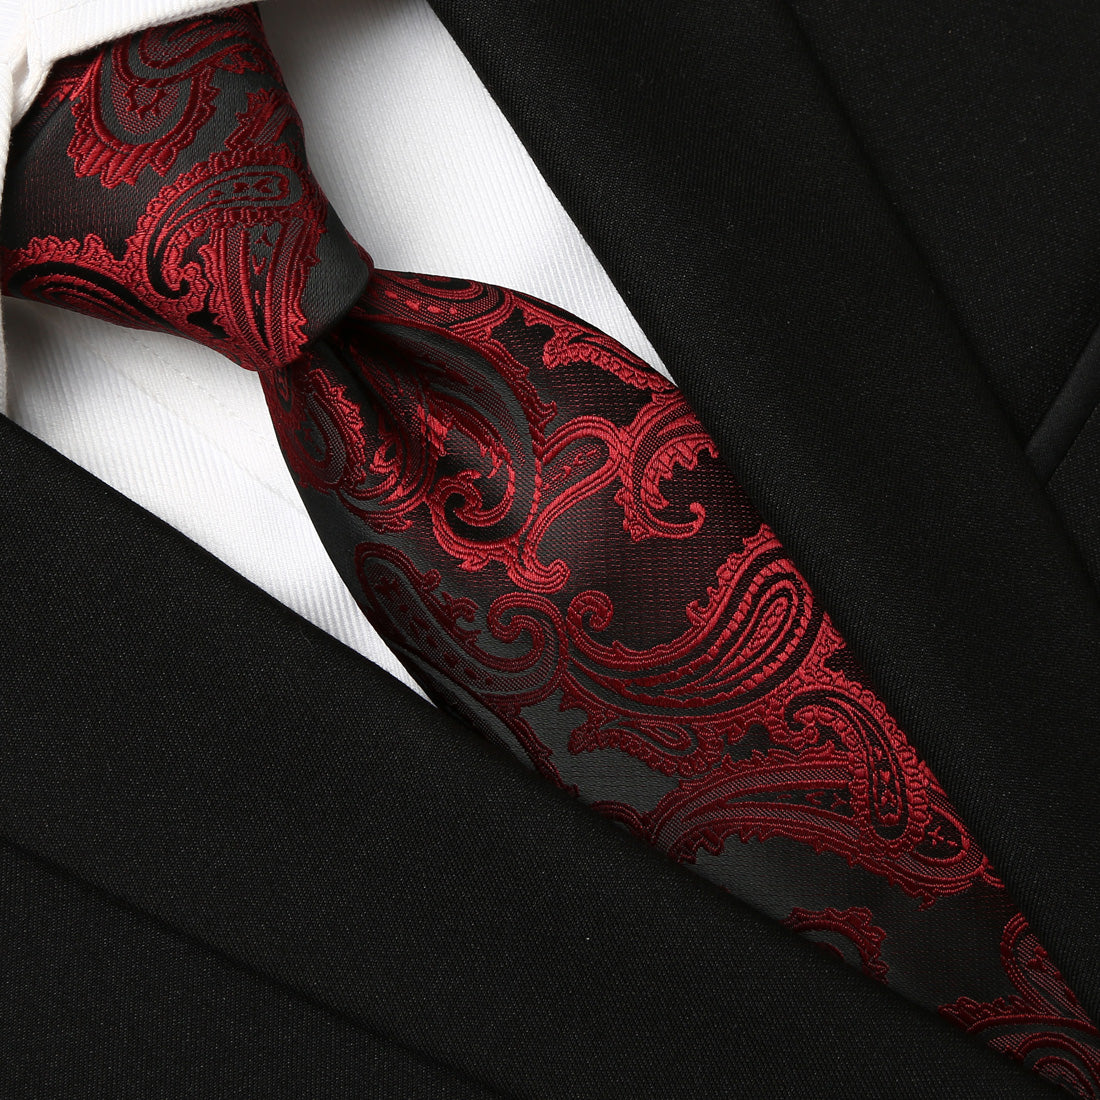 Elegant burgundy on black Paisley tie